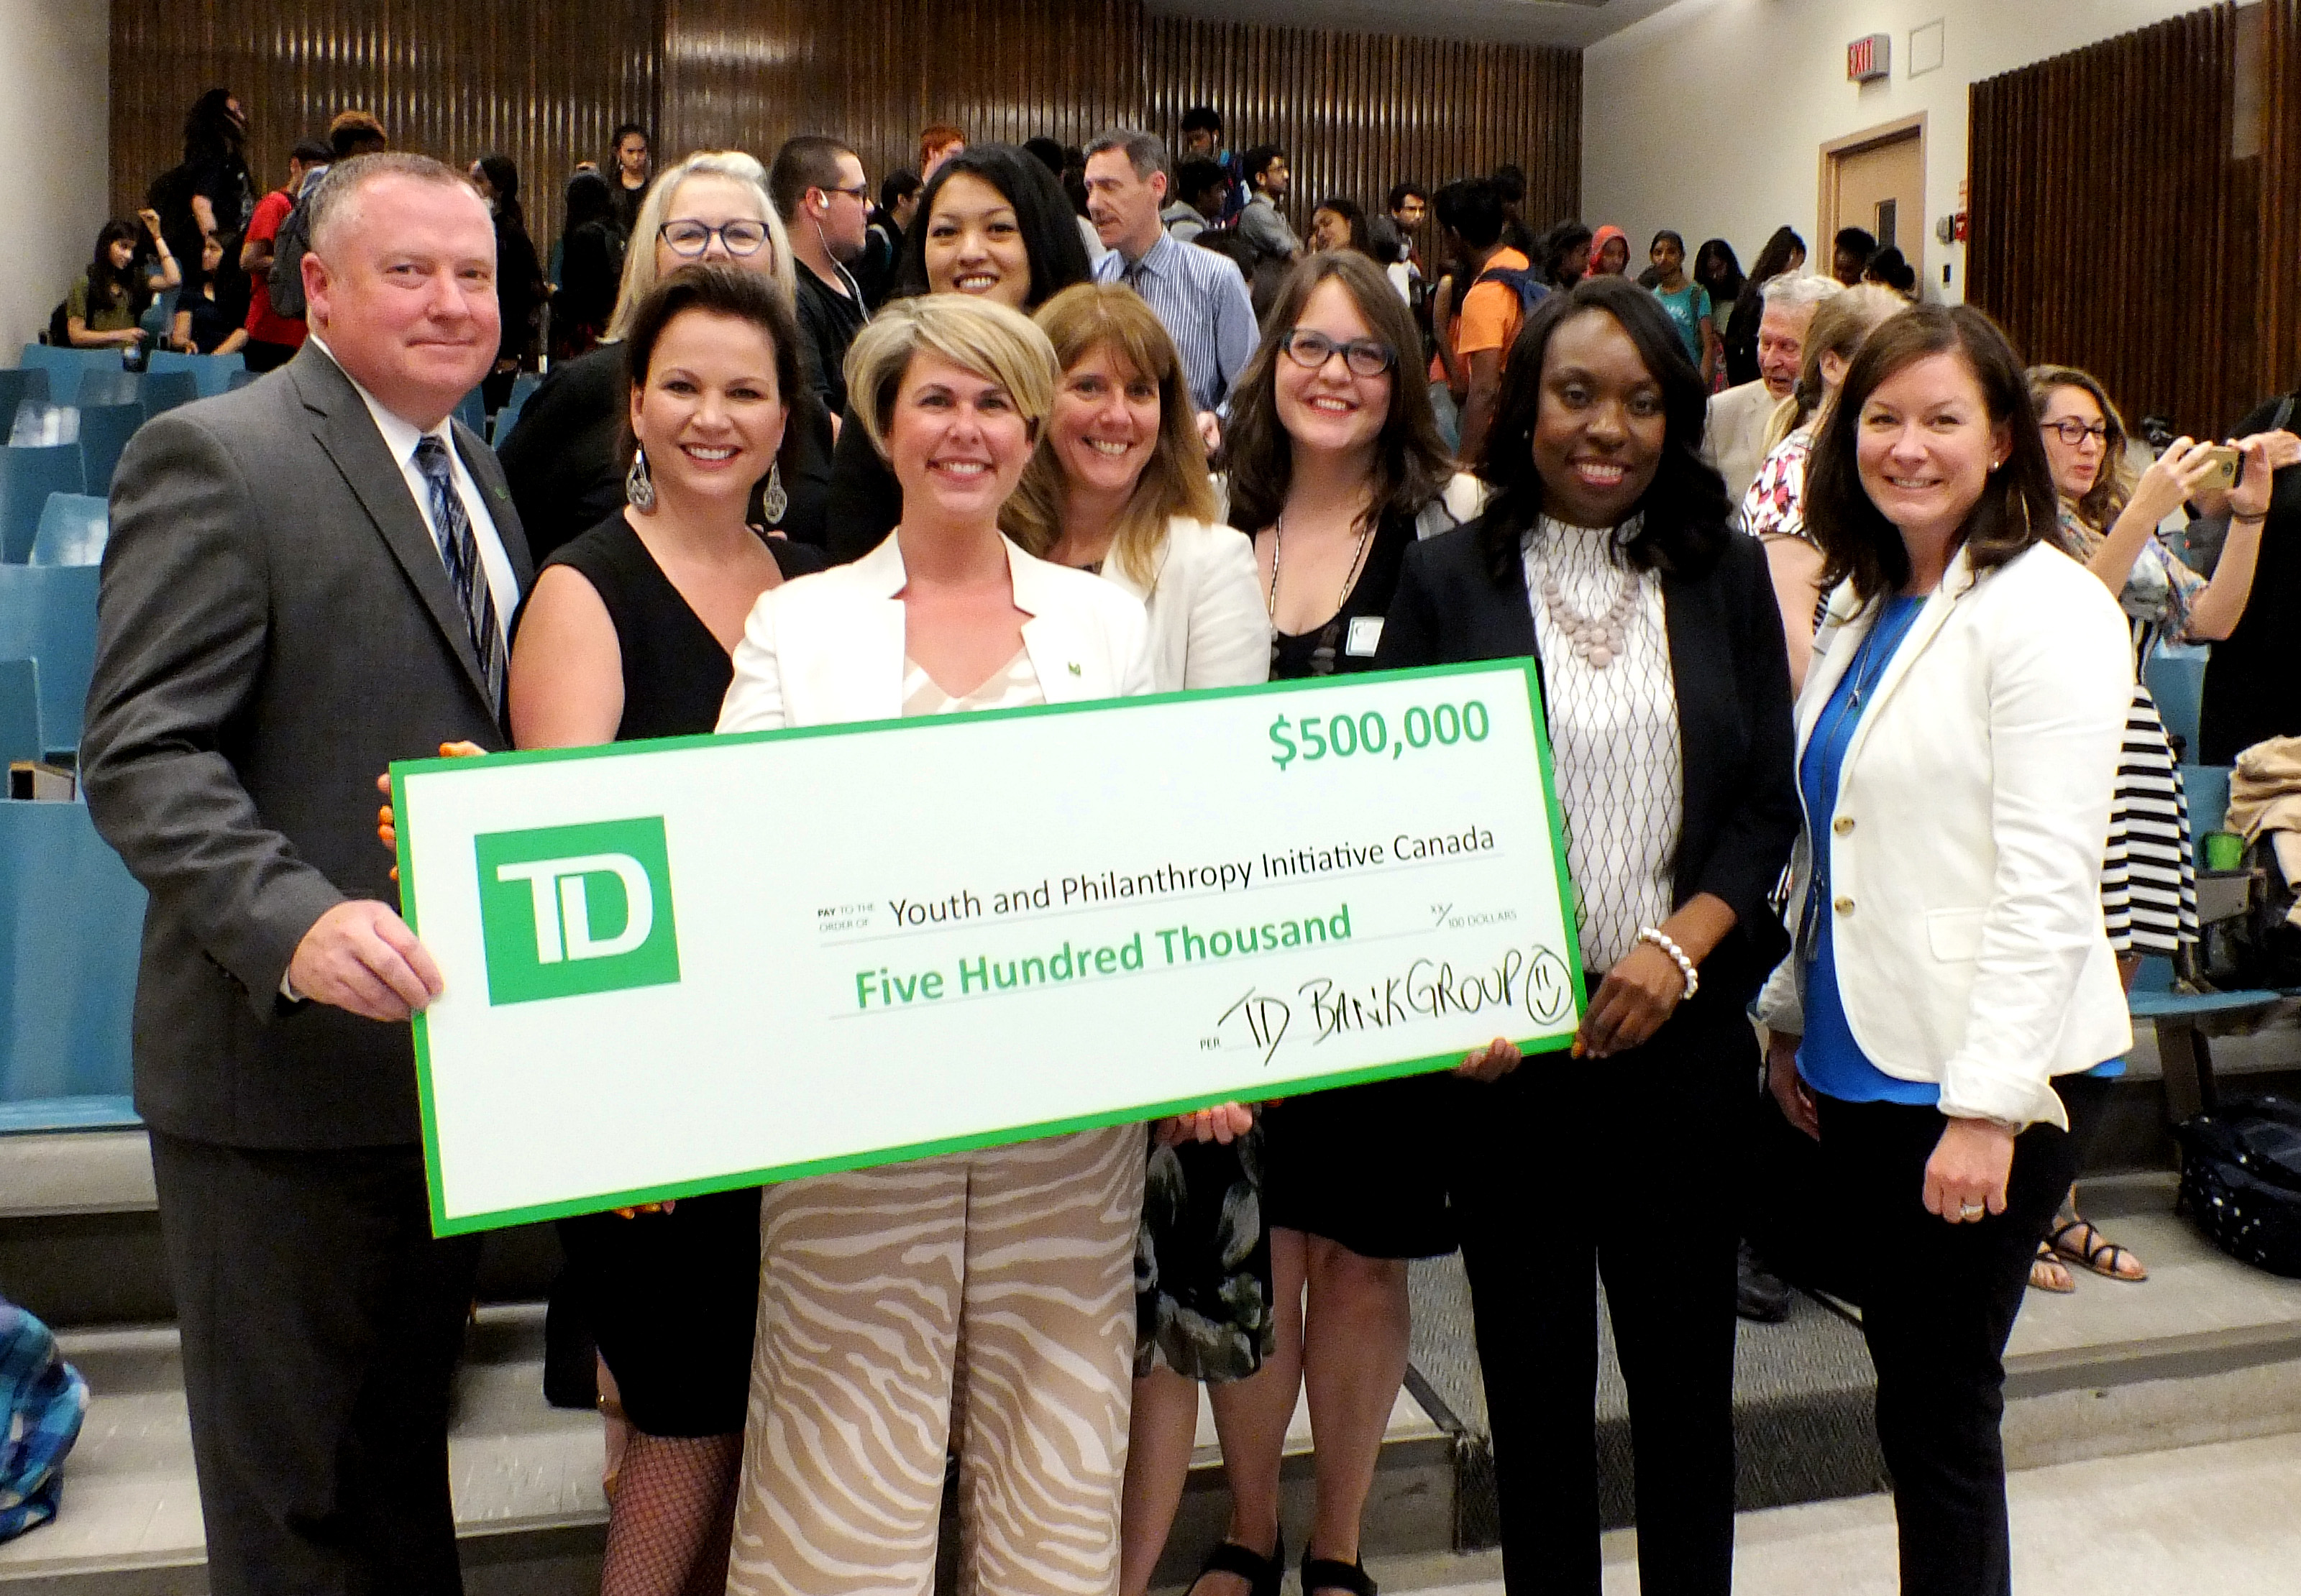 Members of the TD Bank Group present YPI staff and board with a cheque for $500,000